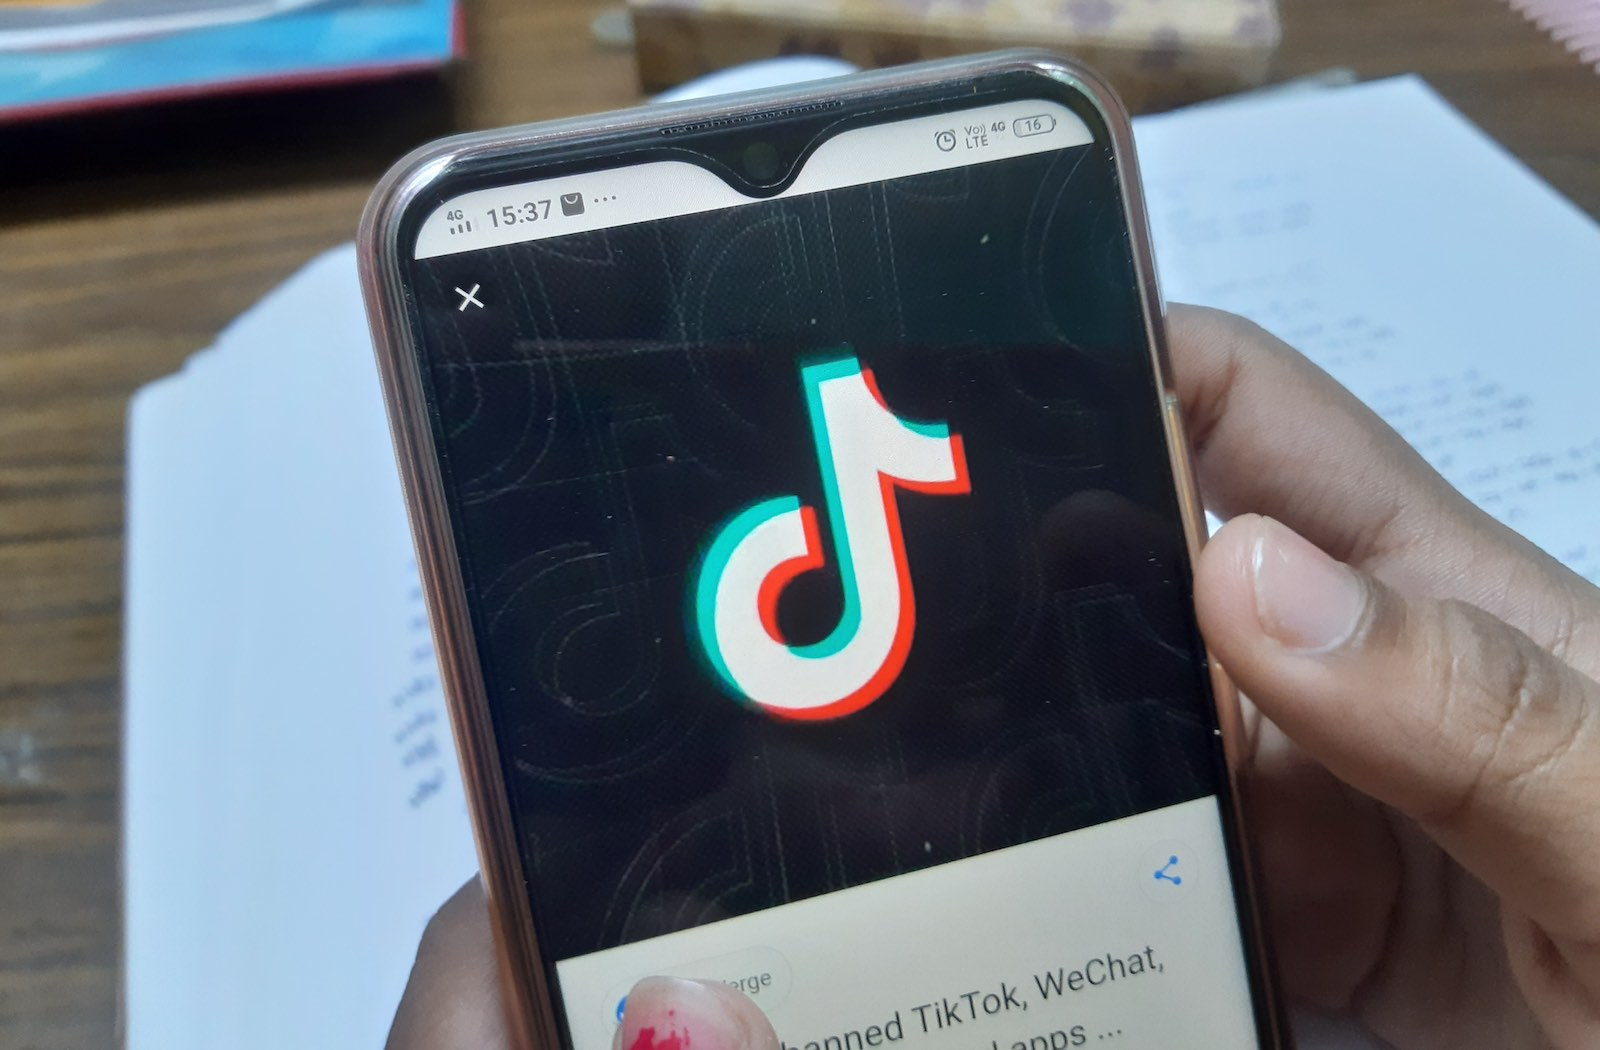 TikTok is one of 59 Chinese apps banned by India on 29 June 2020 (Debajyoti Chakraborty/NurPhoto via Getty Images)